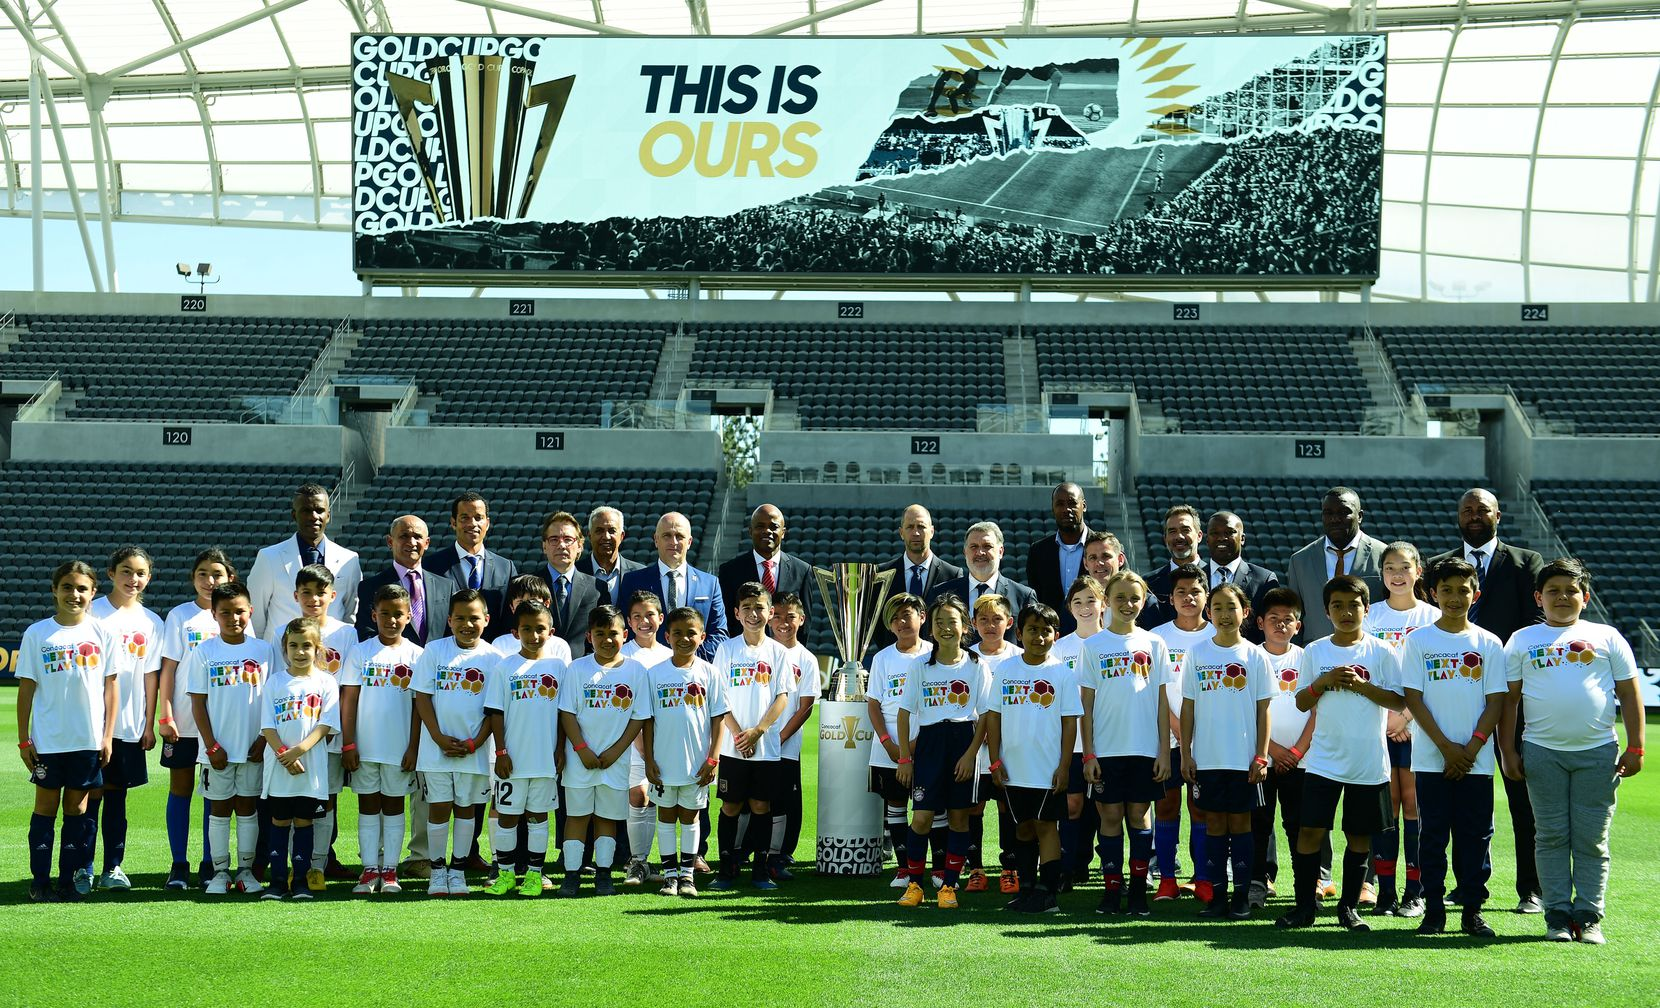 The 2019 Gold Cup Schedule Announcement Ceremony too place April 10th, 2019, at Banc of California Stadium in Los Angeles